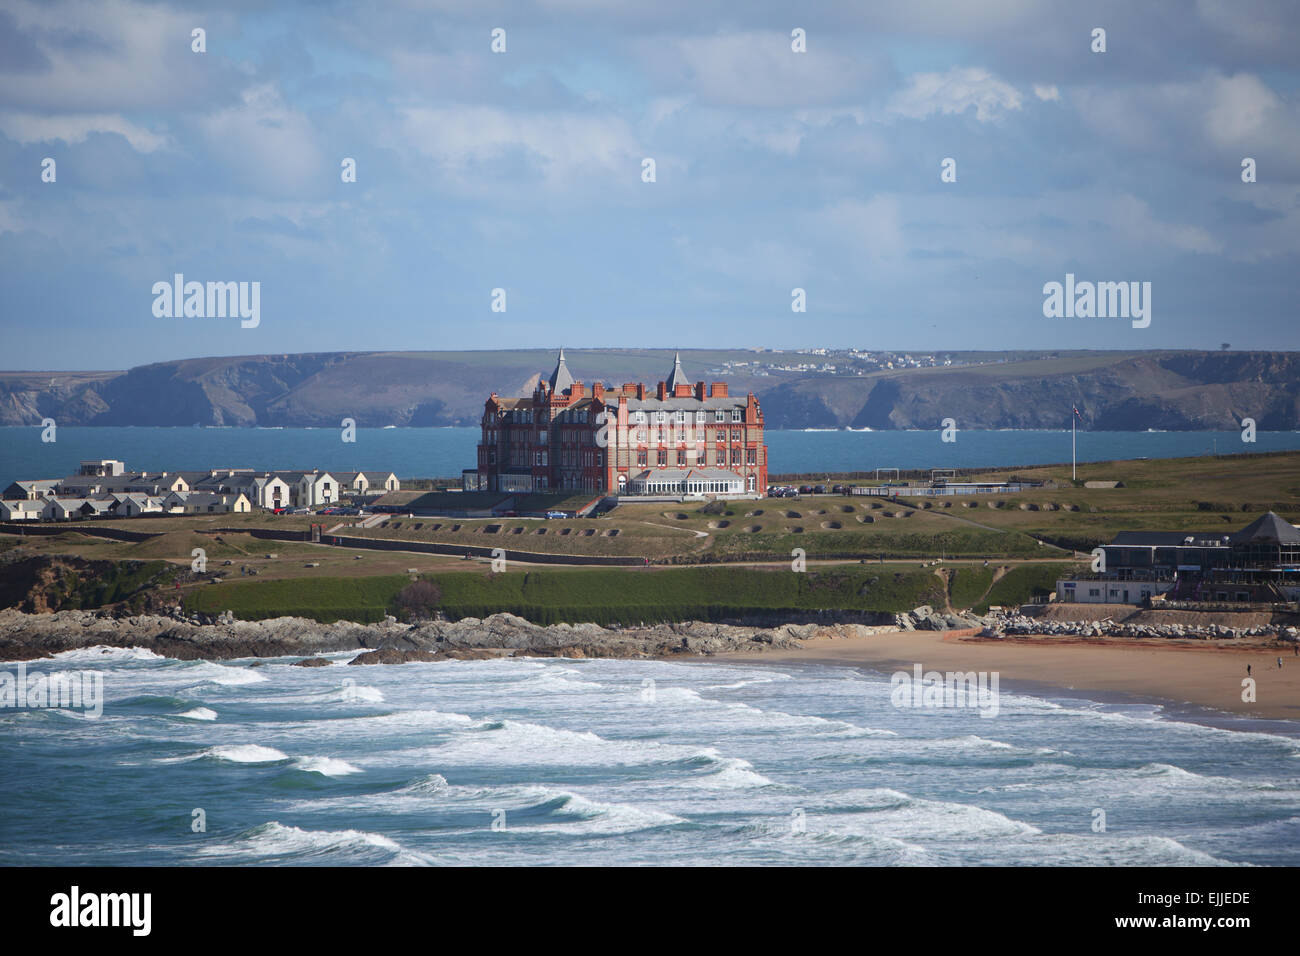 View of the Atlantic Hotel in Newquay, Cornwall, UK on March 25th, 2015. - Stock Image